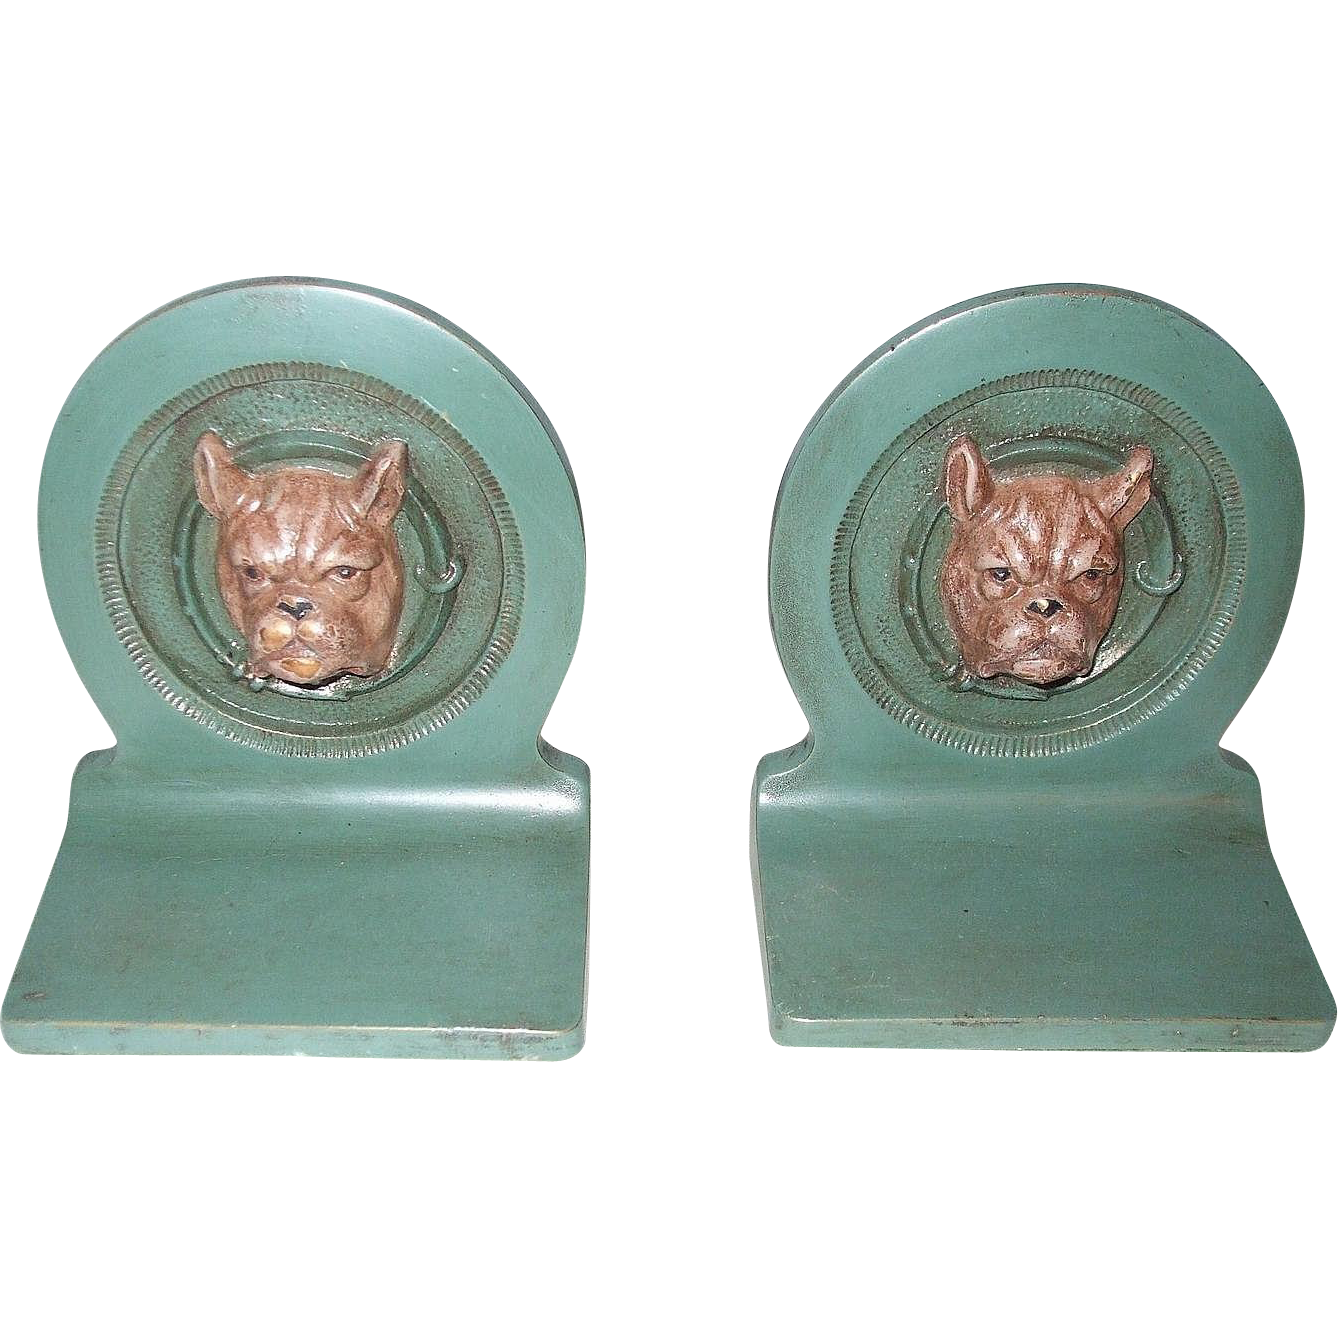 Small Bulldog Cast Metal 3D Bookends